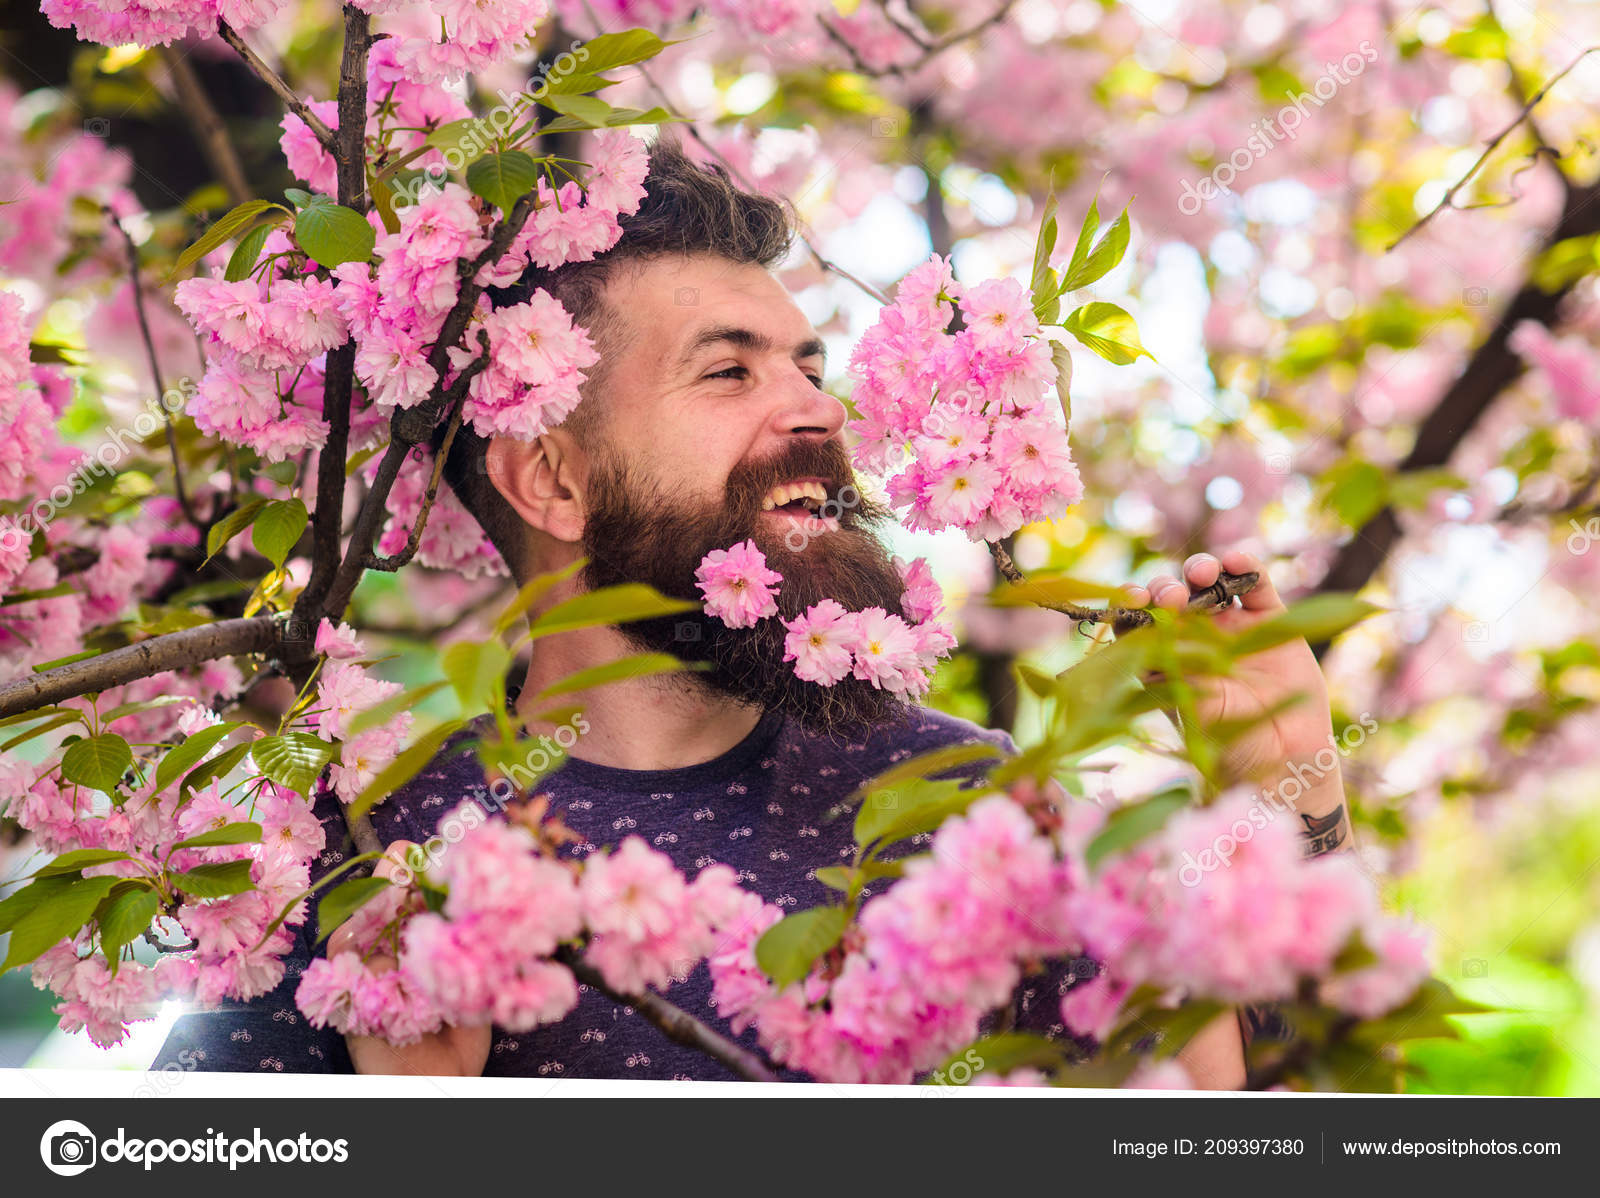 Man With Beard And Mustache On Happy Face Near Pink Flowers Hipster